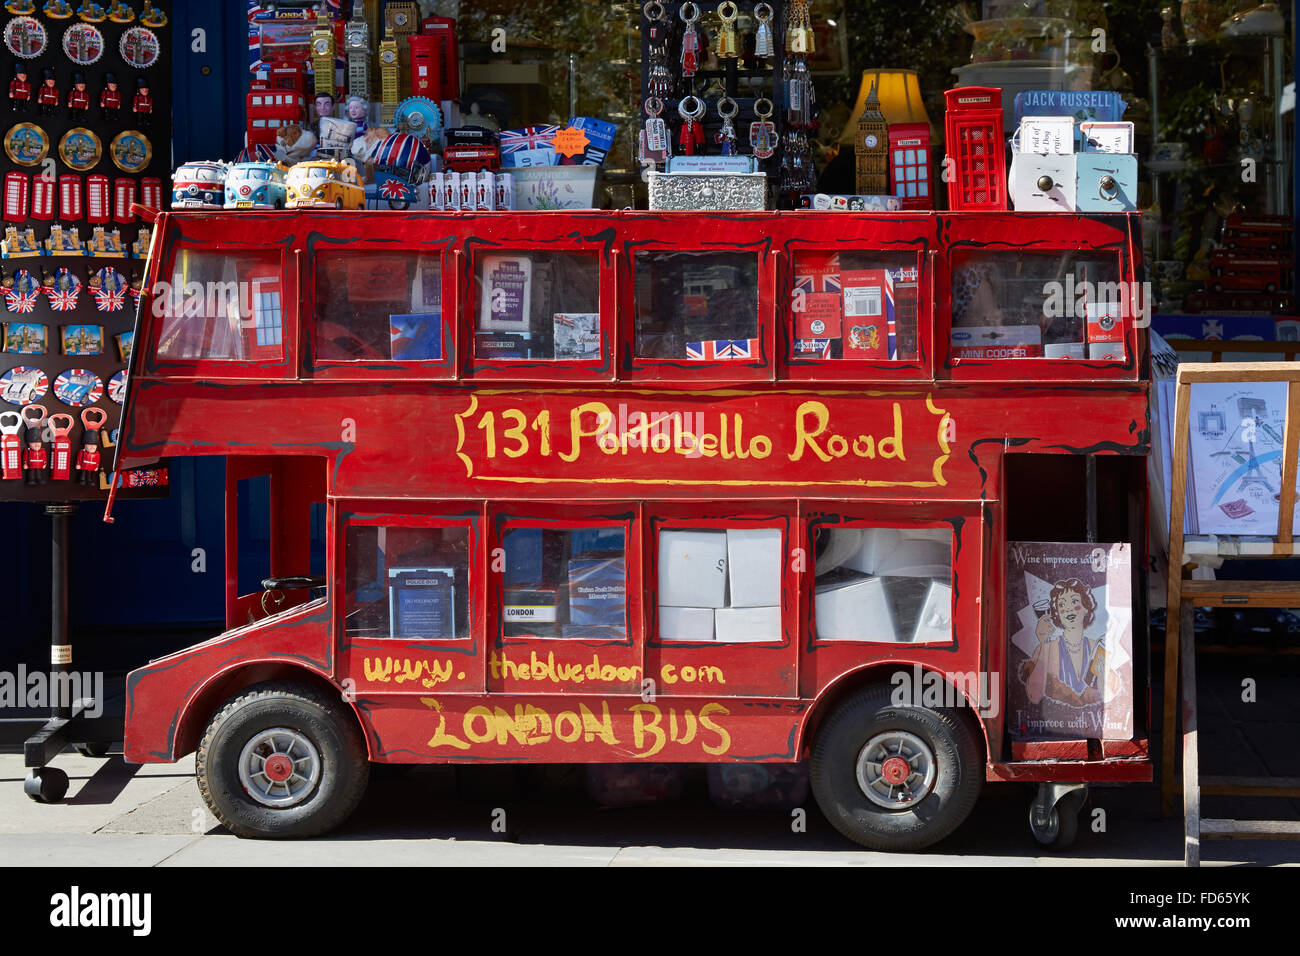 Portobello Road negozio di souvenir con red London bus model a Londra Immagini Stock